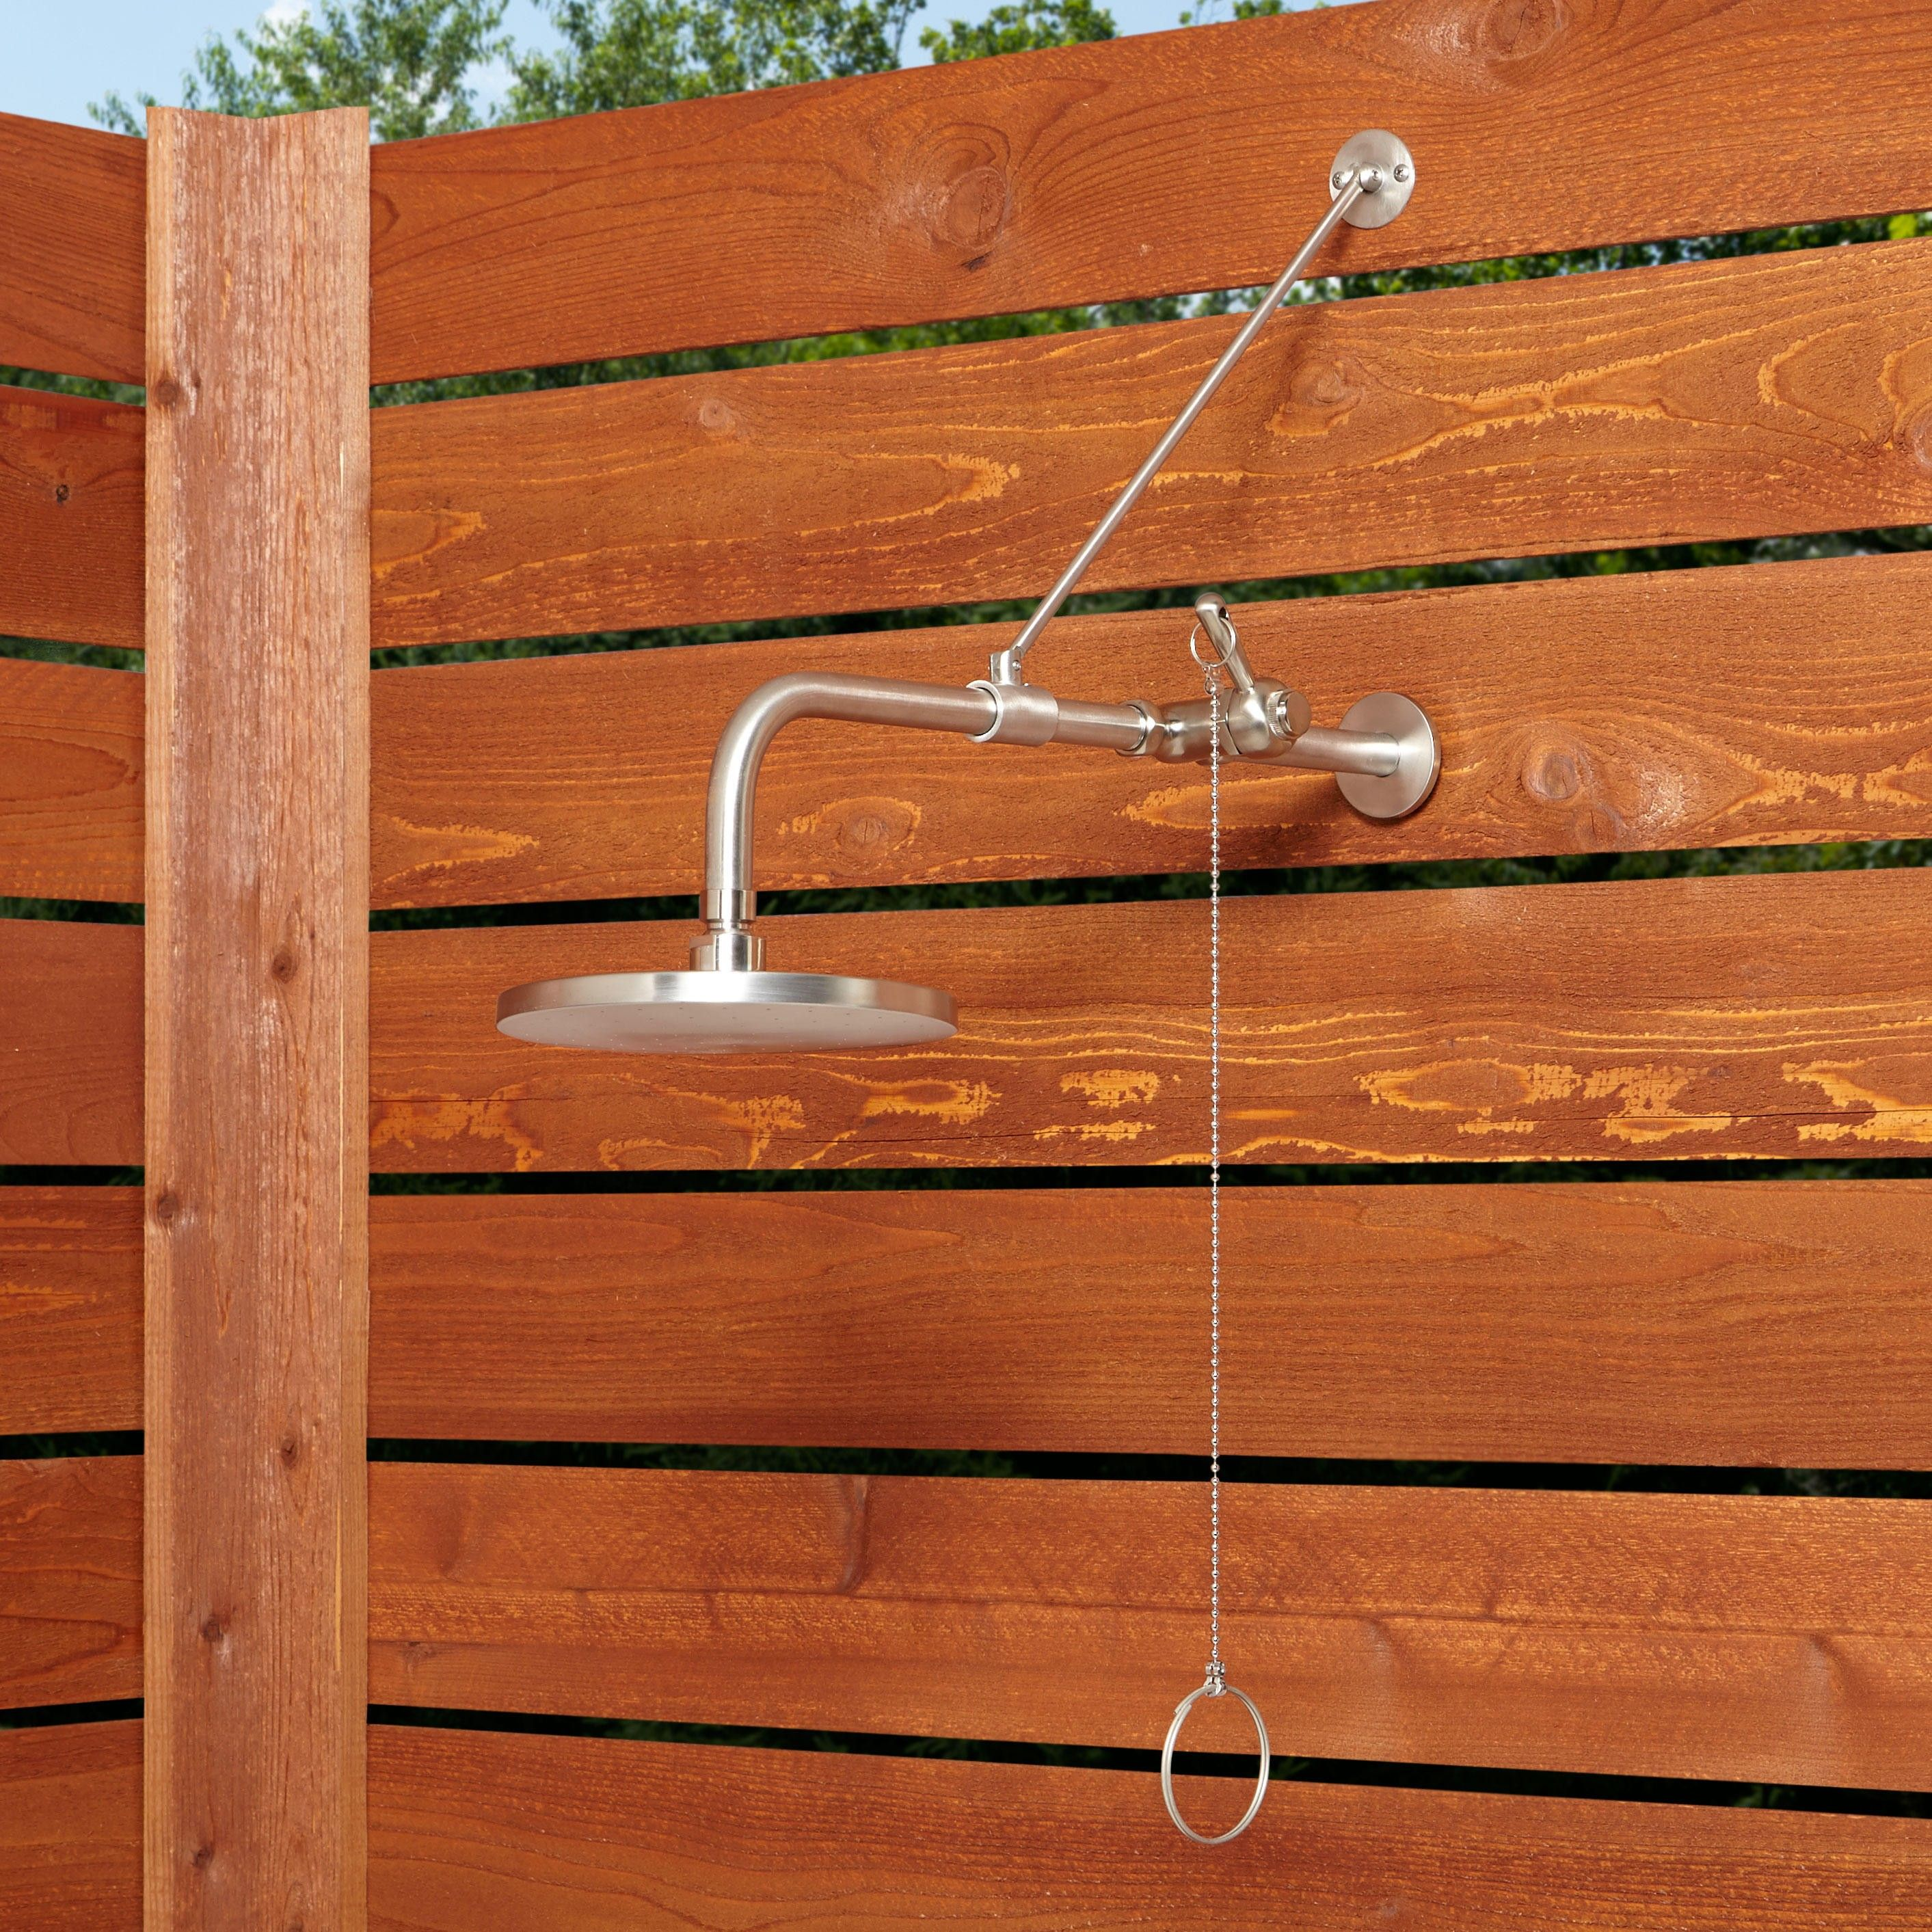 Pull Chain Shower Inspiration Stainless Steel Pull Chain Wallmount Outdoor Shower  Wall Mount Design Inspiration